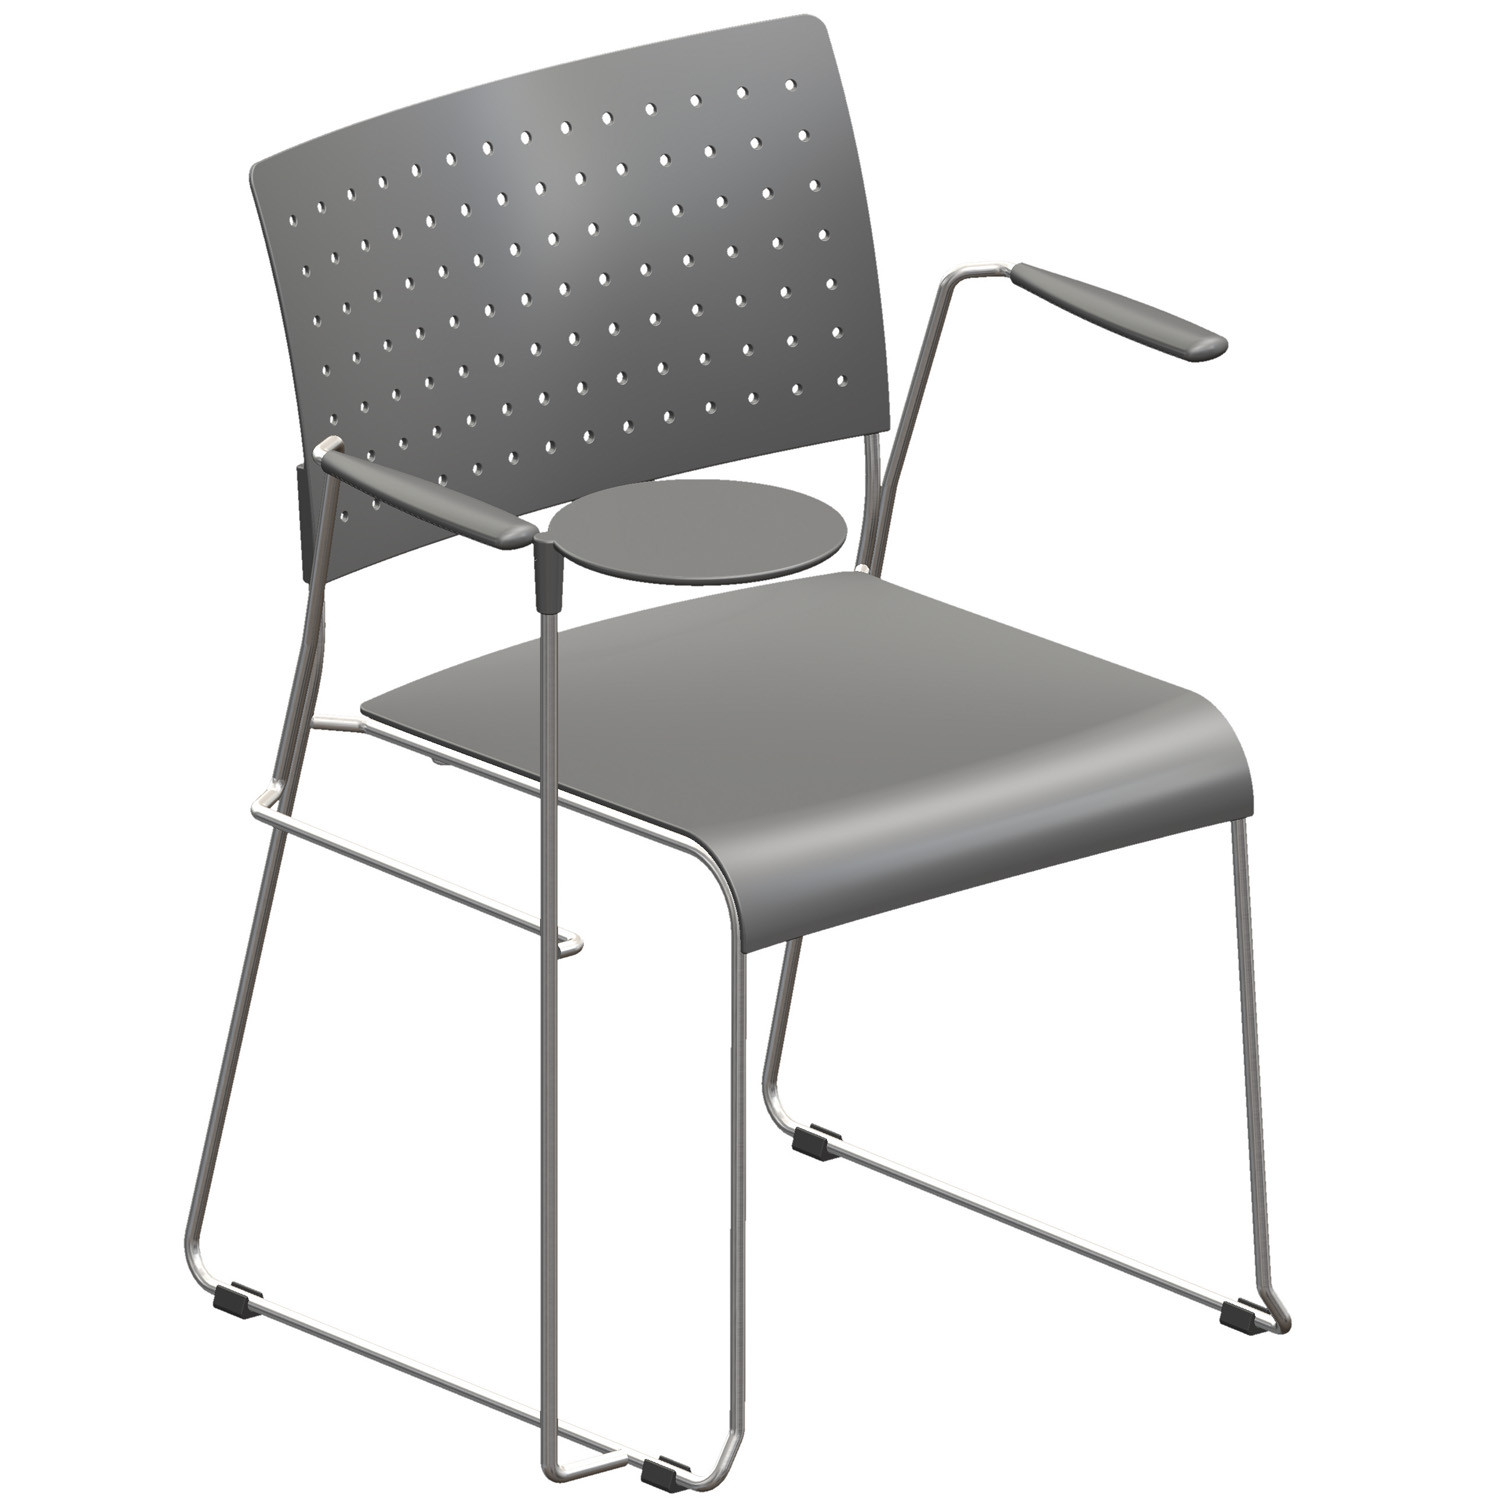 Foxy Visitors Chair with writing tablet - gray